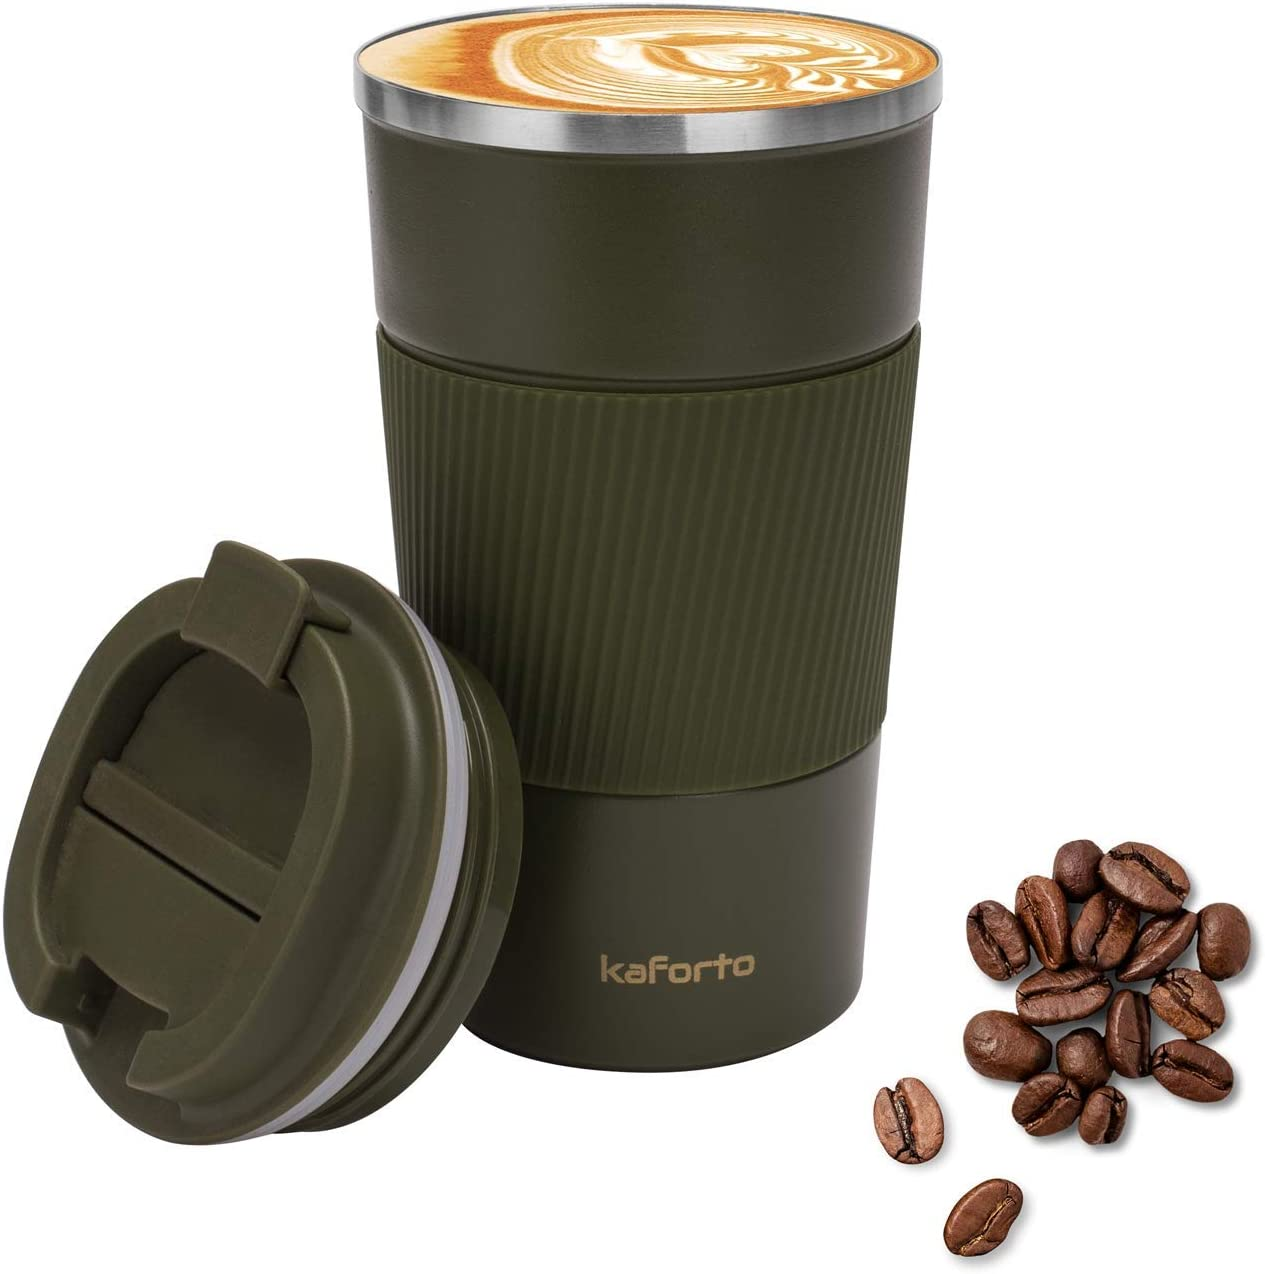 16oz Insulated Coffee Travel Mug Stainless Steel Vacuum Coffee Cup Leakproof with Screw Lid Double Wall Coffee Tumbler Reusable Thermal Cup for Hot/Iced Beverage - 510ml, Green